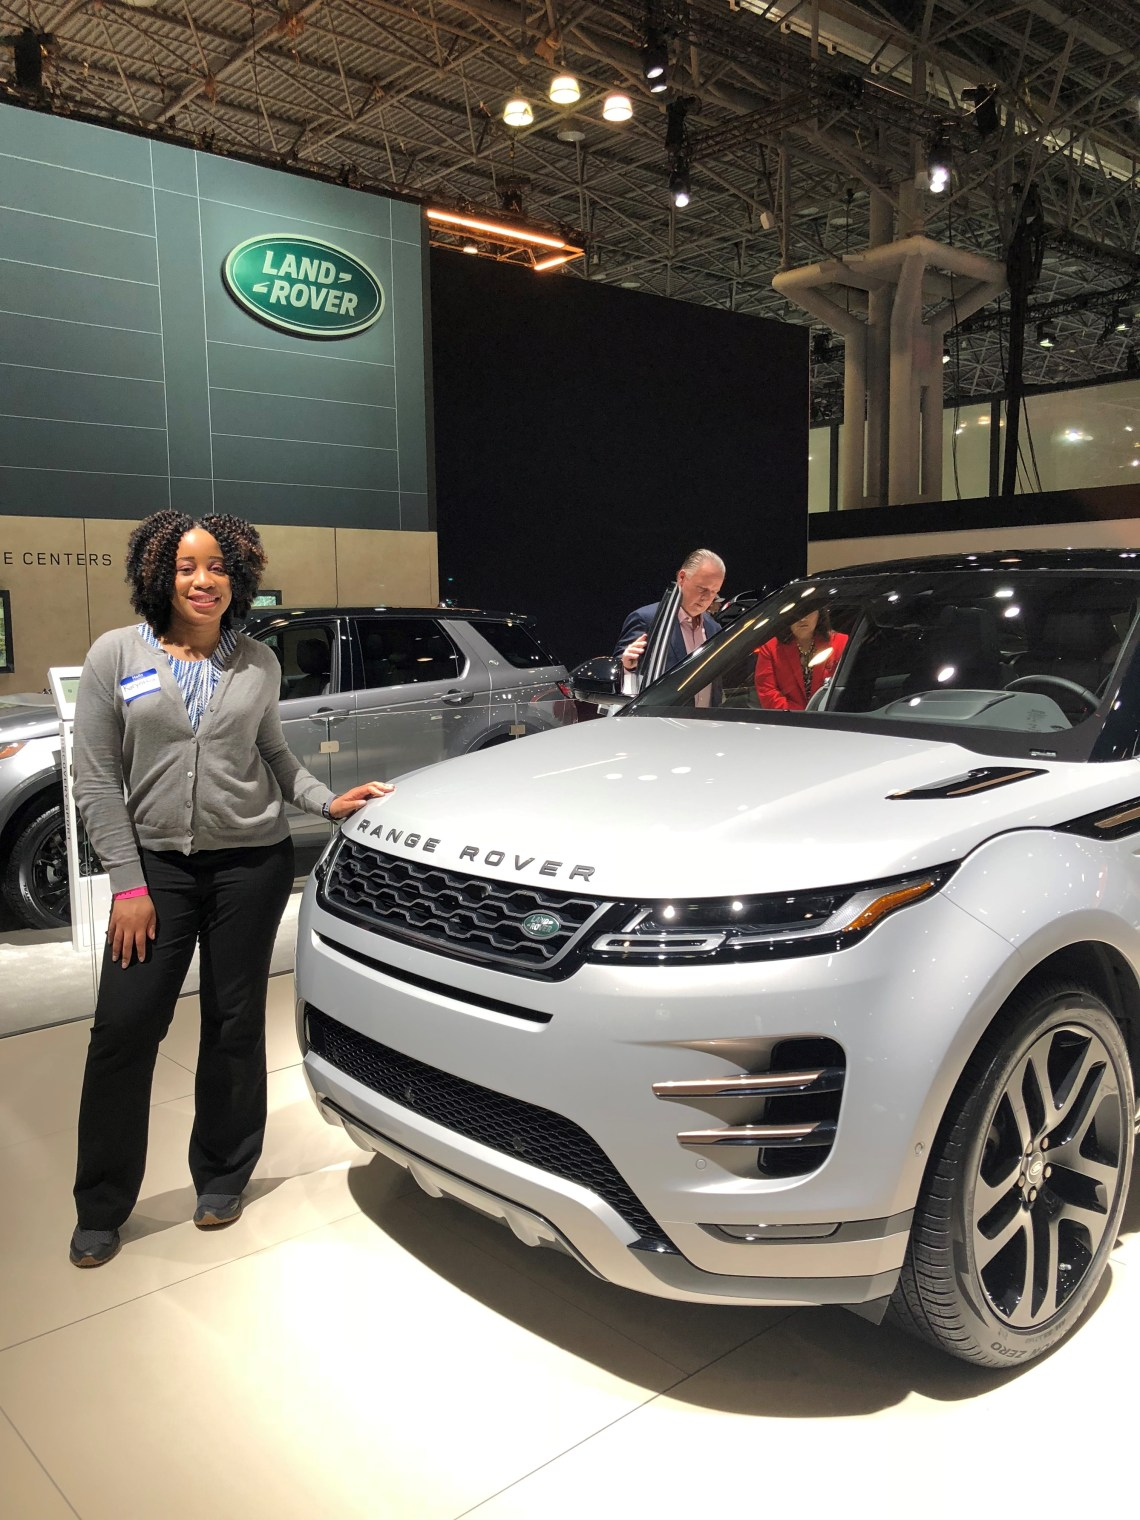 Attending The New York Auto Show While Female